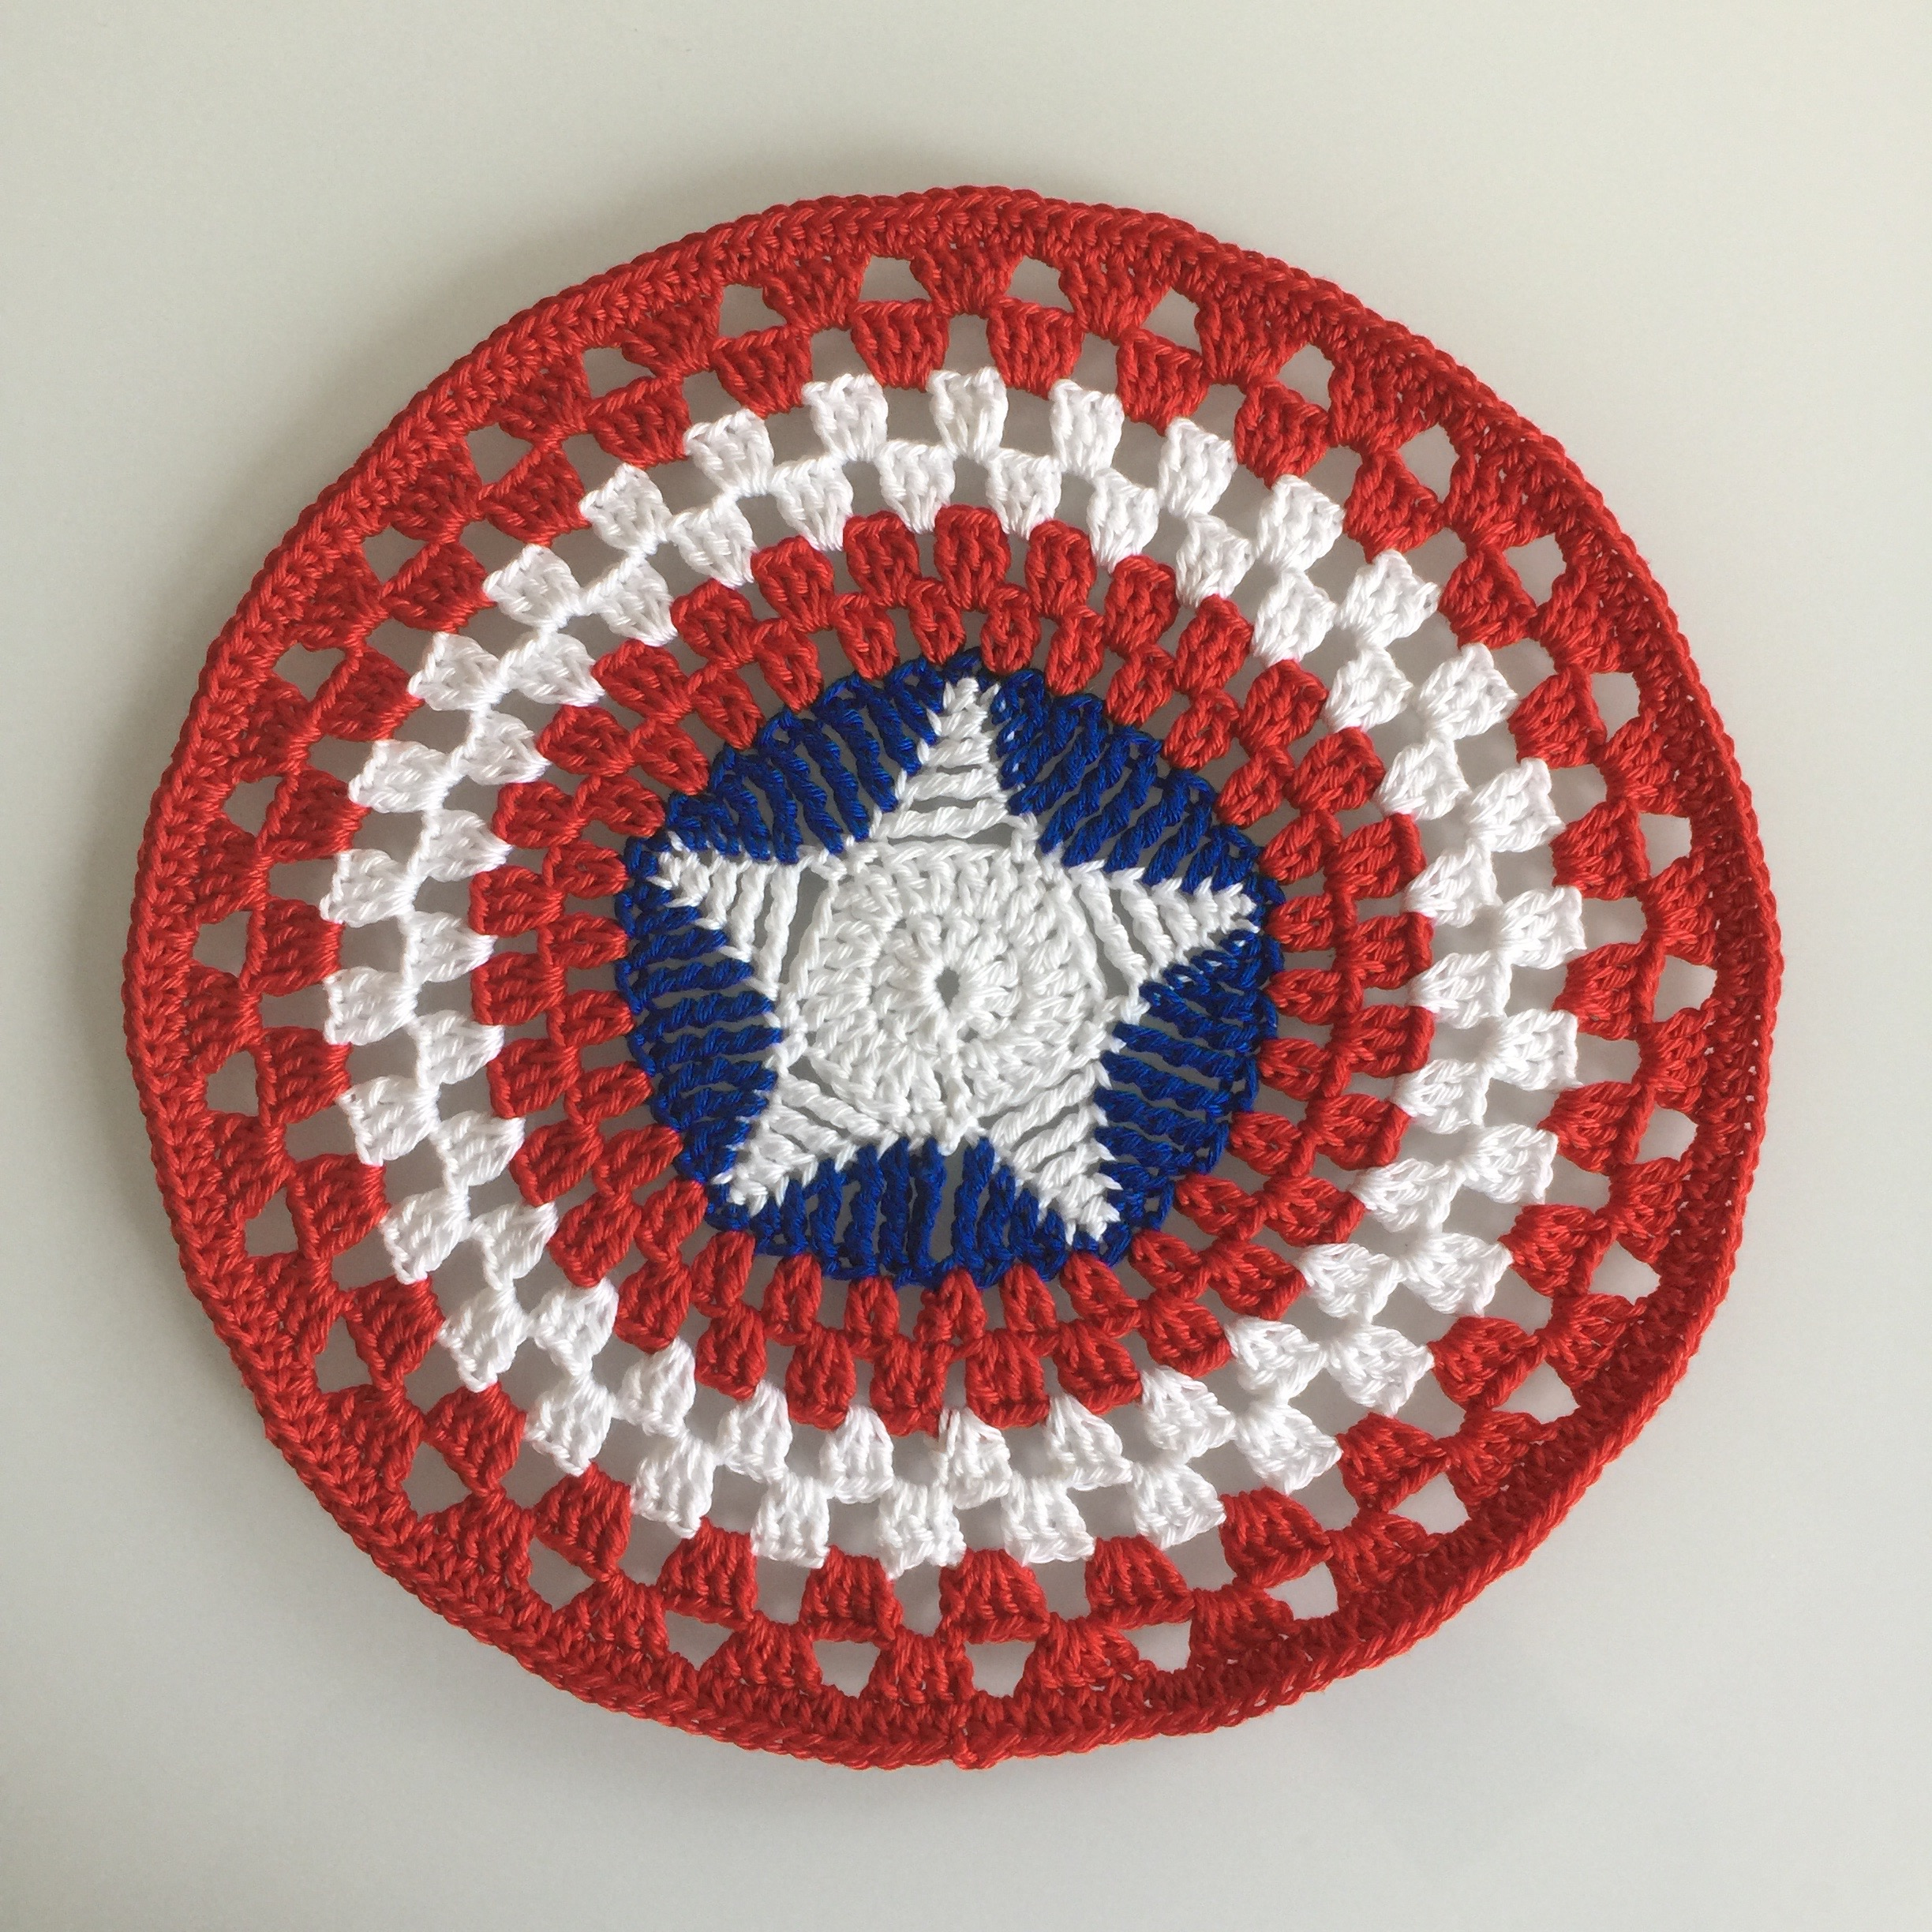 Crochet Captain America shield